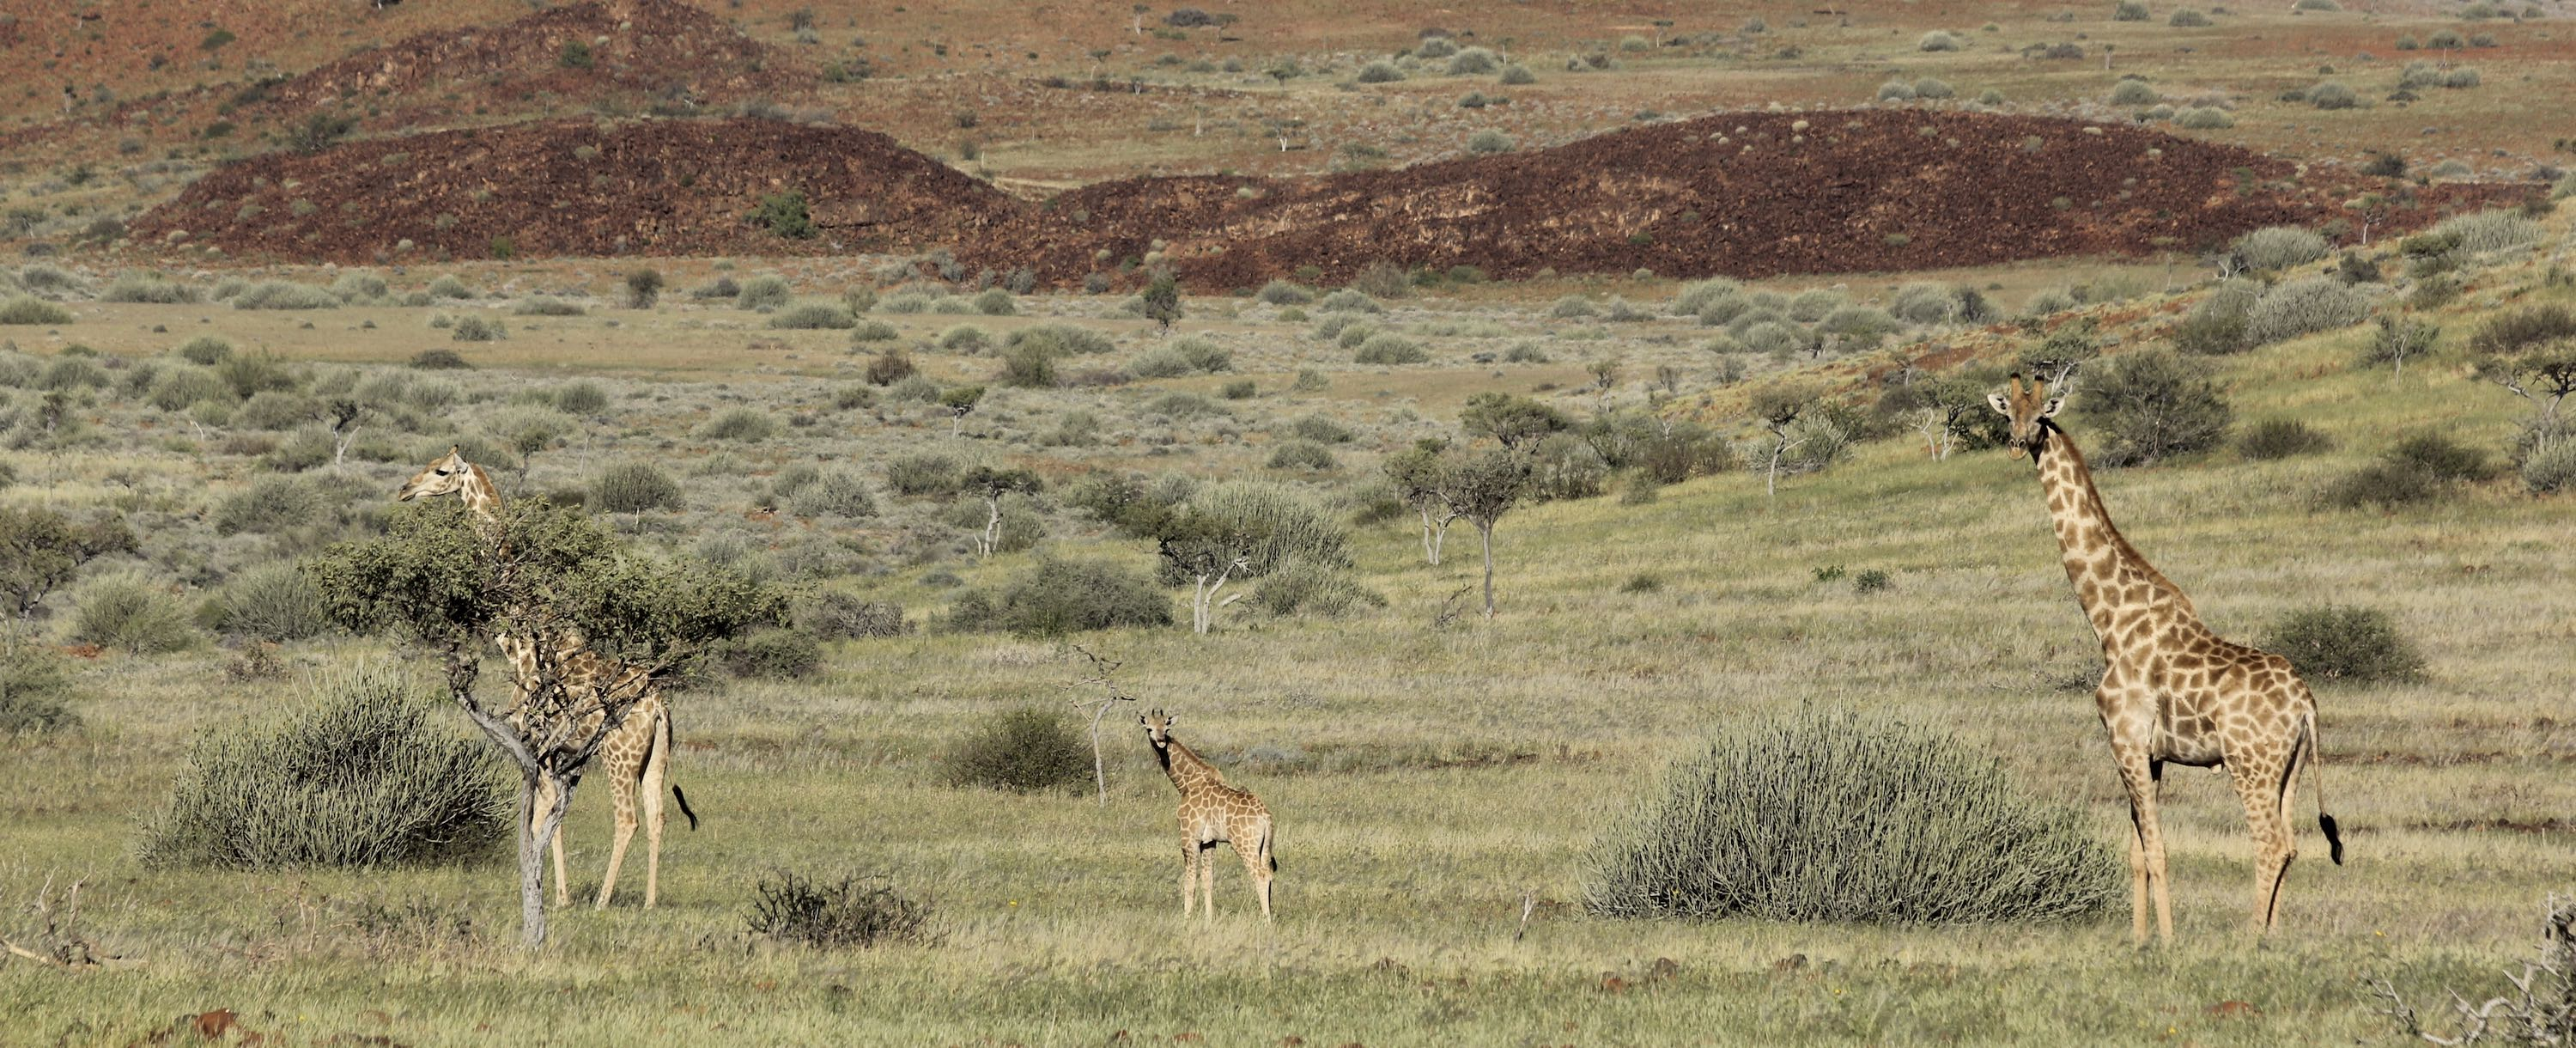 Three giraffe, including a baby, trek across the landscape of northern Namibia.